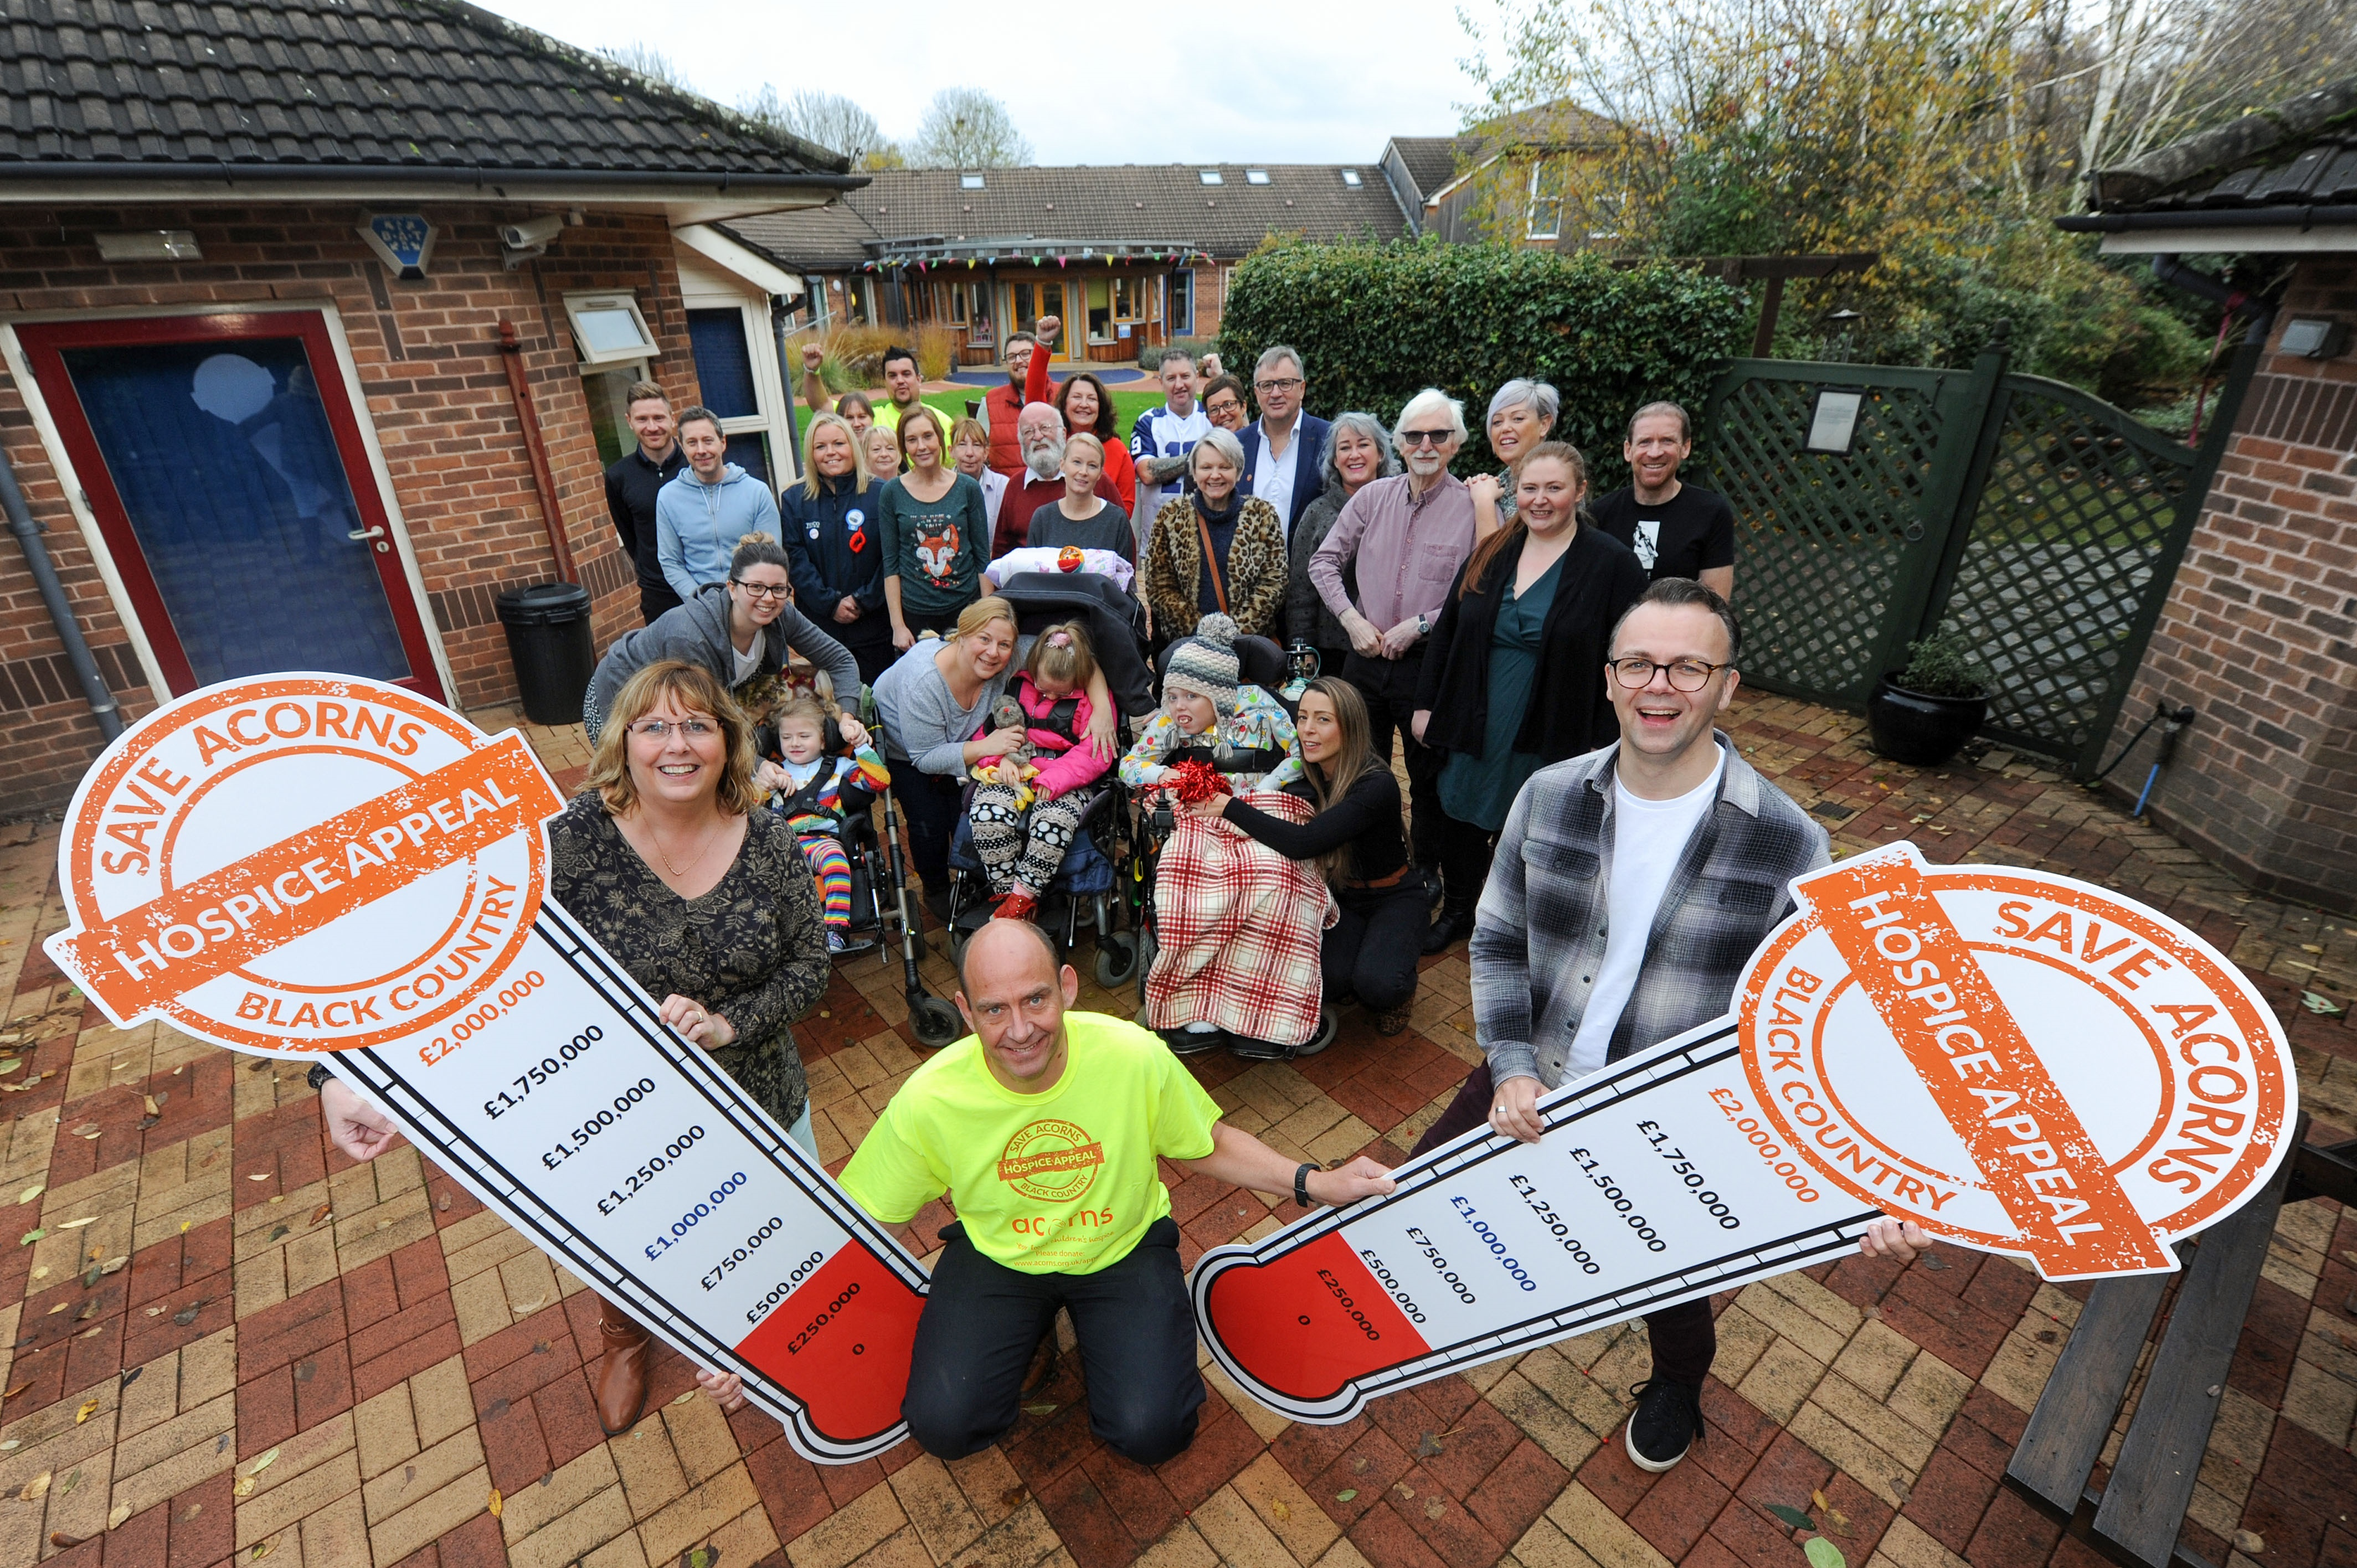 Hope grows for future of Acorns Children's Hospice, but still work to do